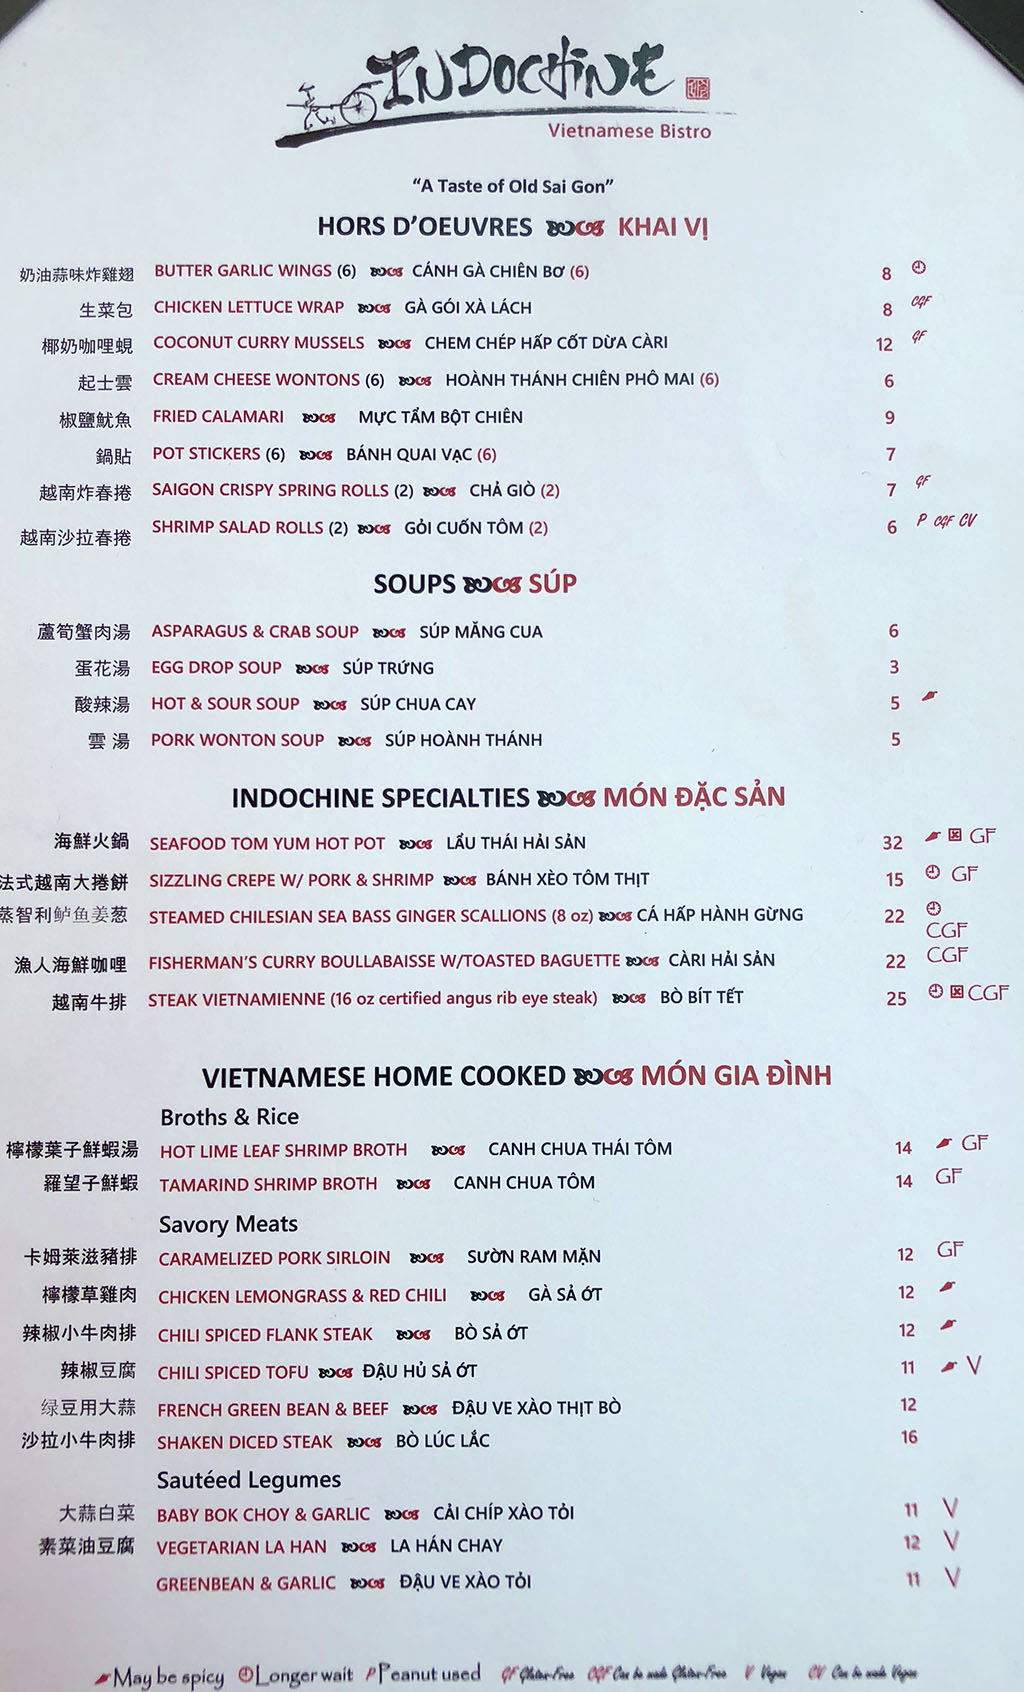 Indochine Vietnamese Bistro menu - appetizers, soups, specialties, home cooked